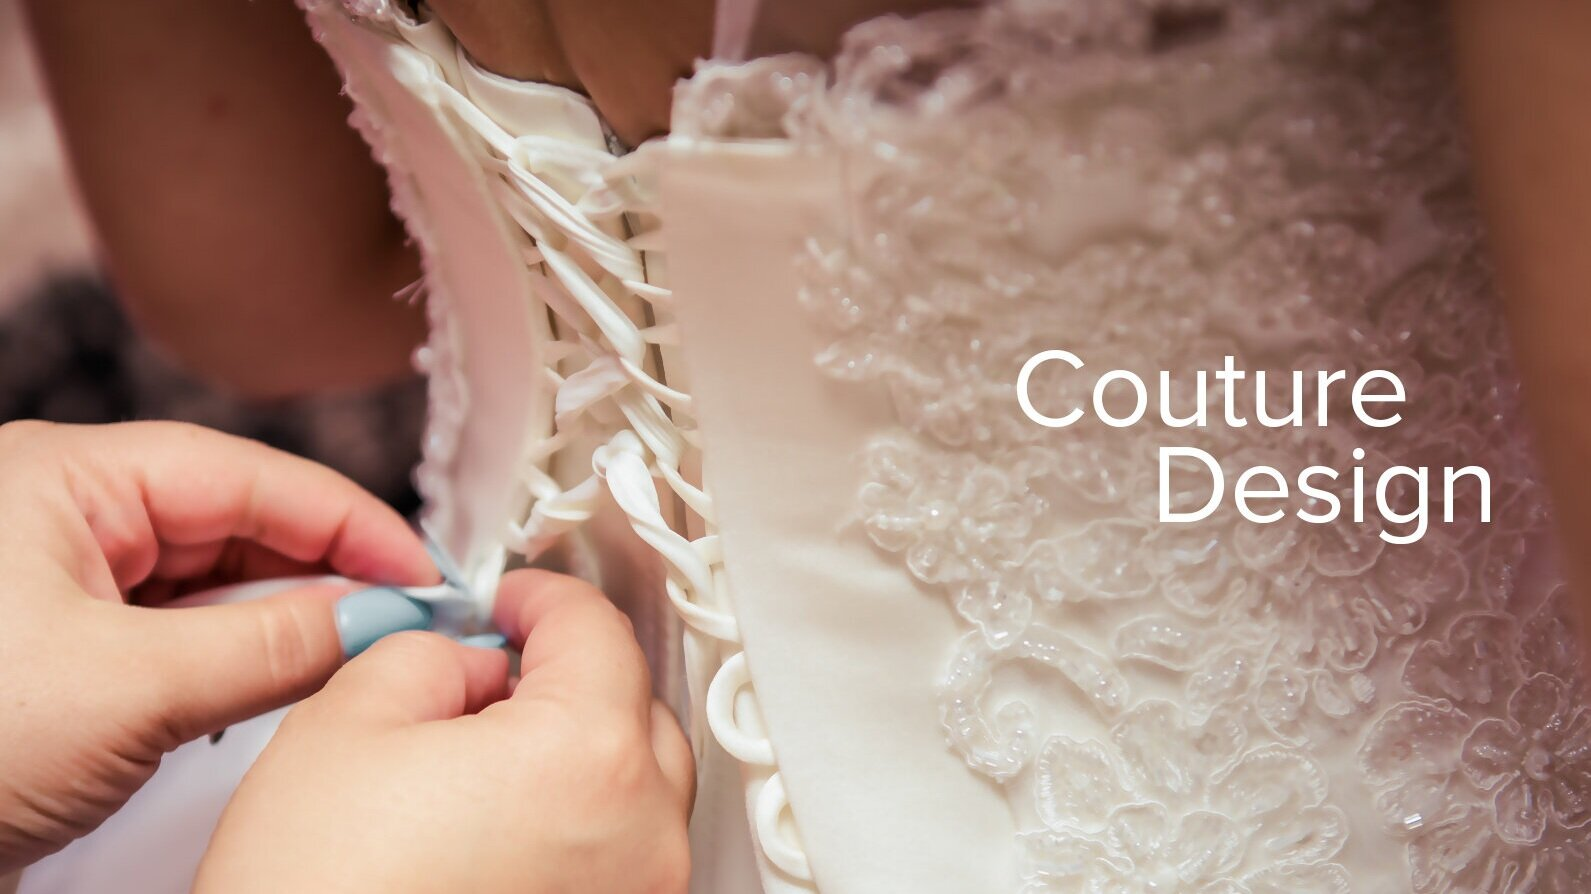 CoutureDesign921.jpg